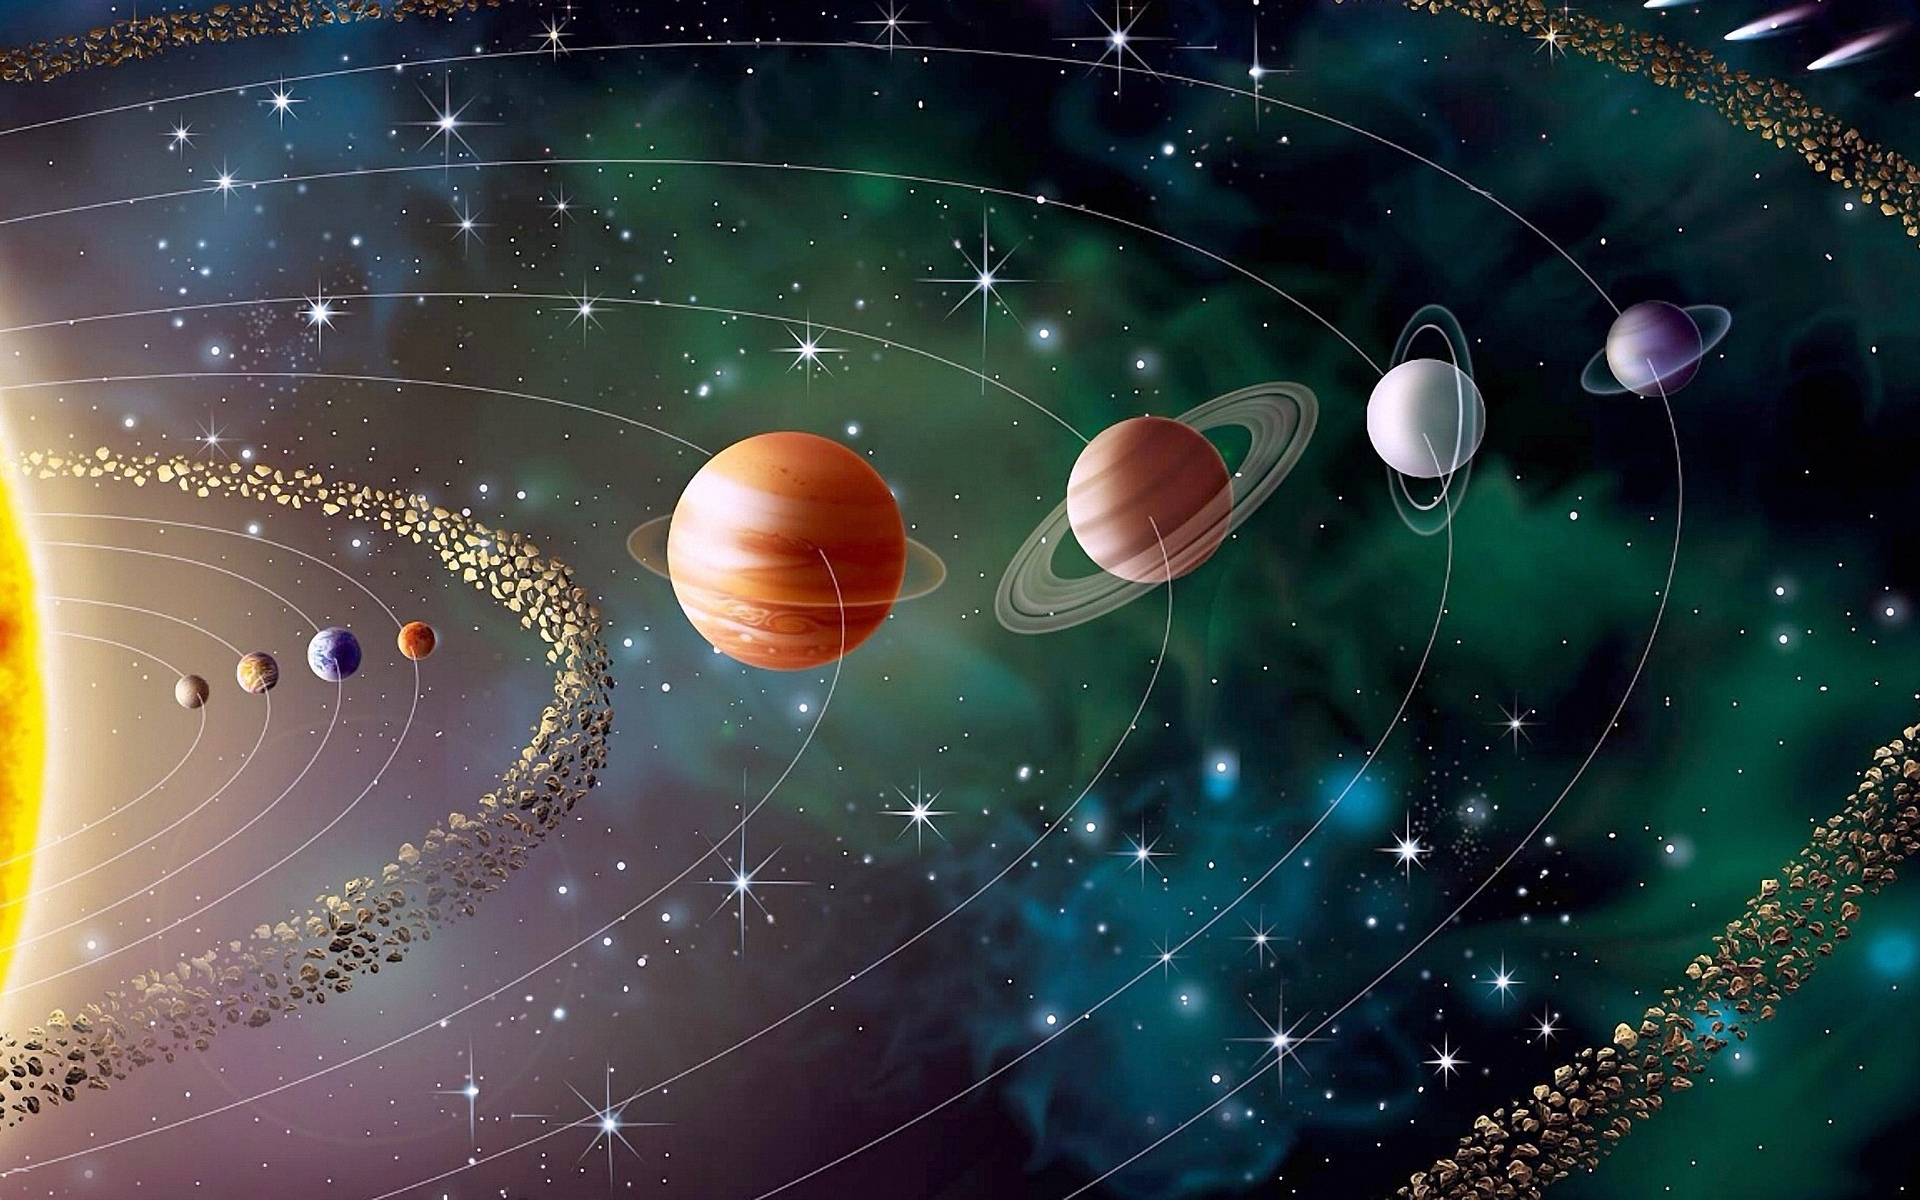 planets orbiting video - HD 1920×1200